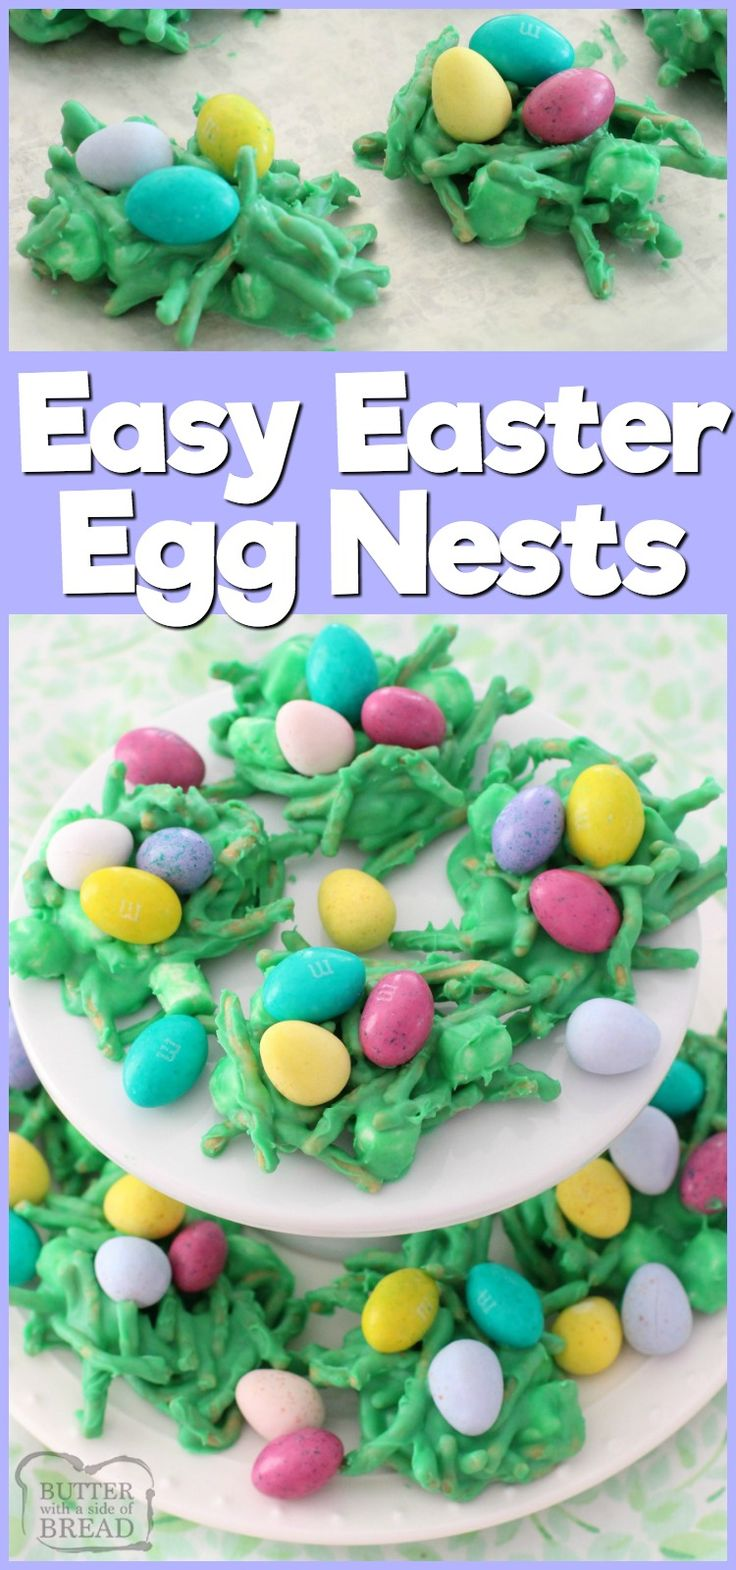 Fun & festive Easter Egg Nests recipe using white chocolate, marshmallows and chocolate eggs of course! Simple dessert recipe by Butter With A Side of Bread  via @ButterGirls